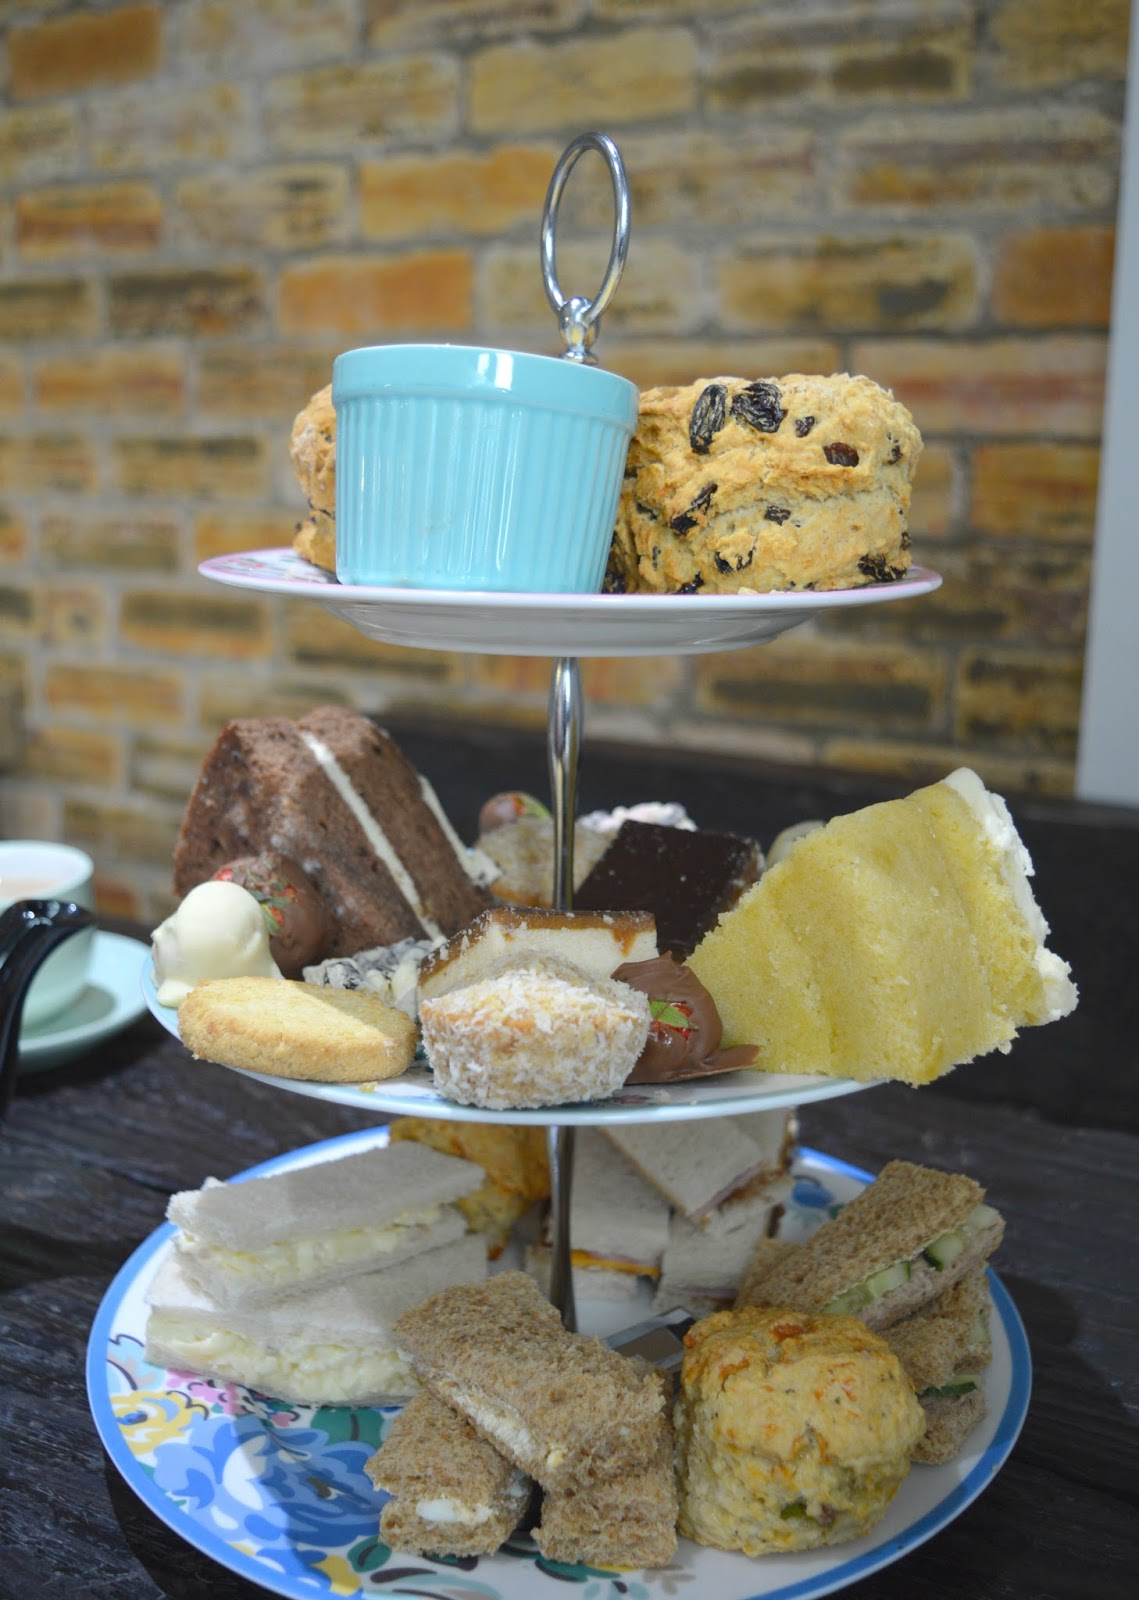 Afternoon Tea at the Joinery Workshop and Tearoom, Burnopfield